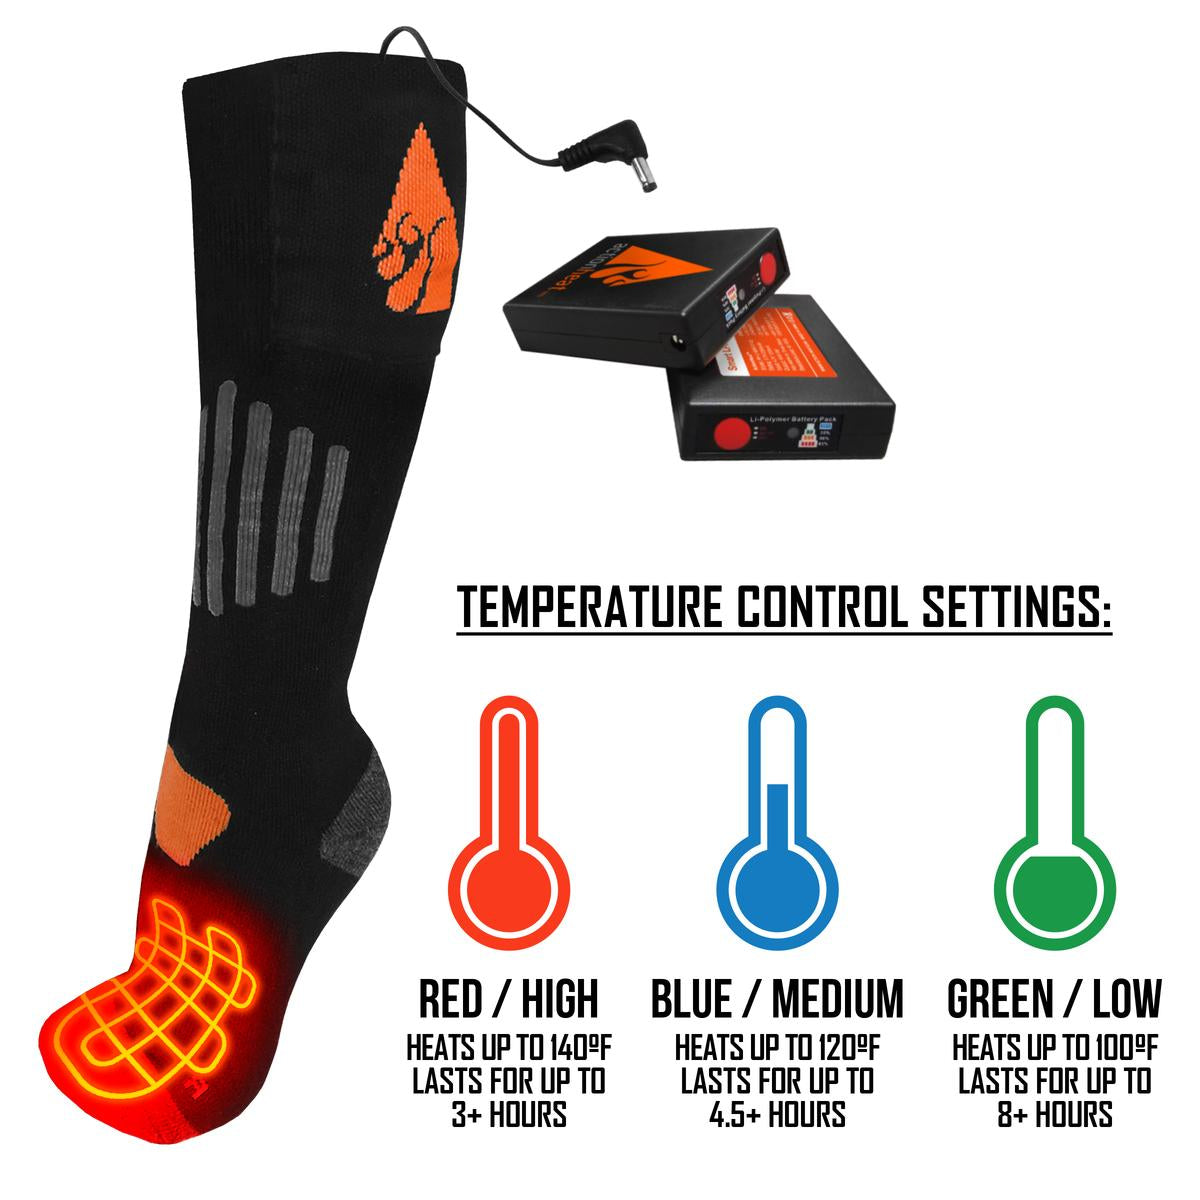 ActionHeat 3.7V Rechargeable Battery Heated Socks - Wool - Size